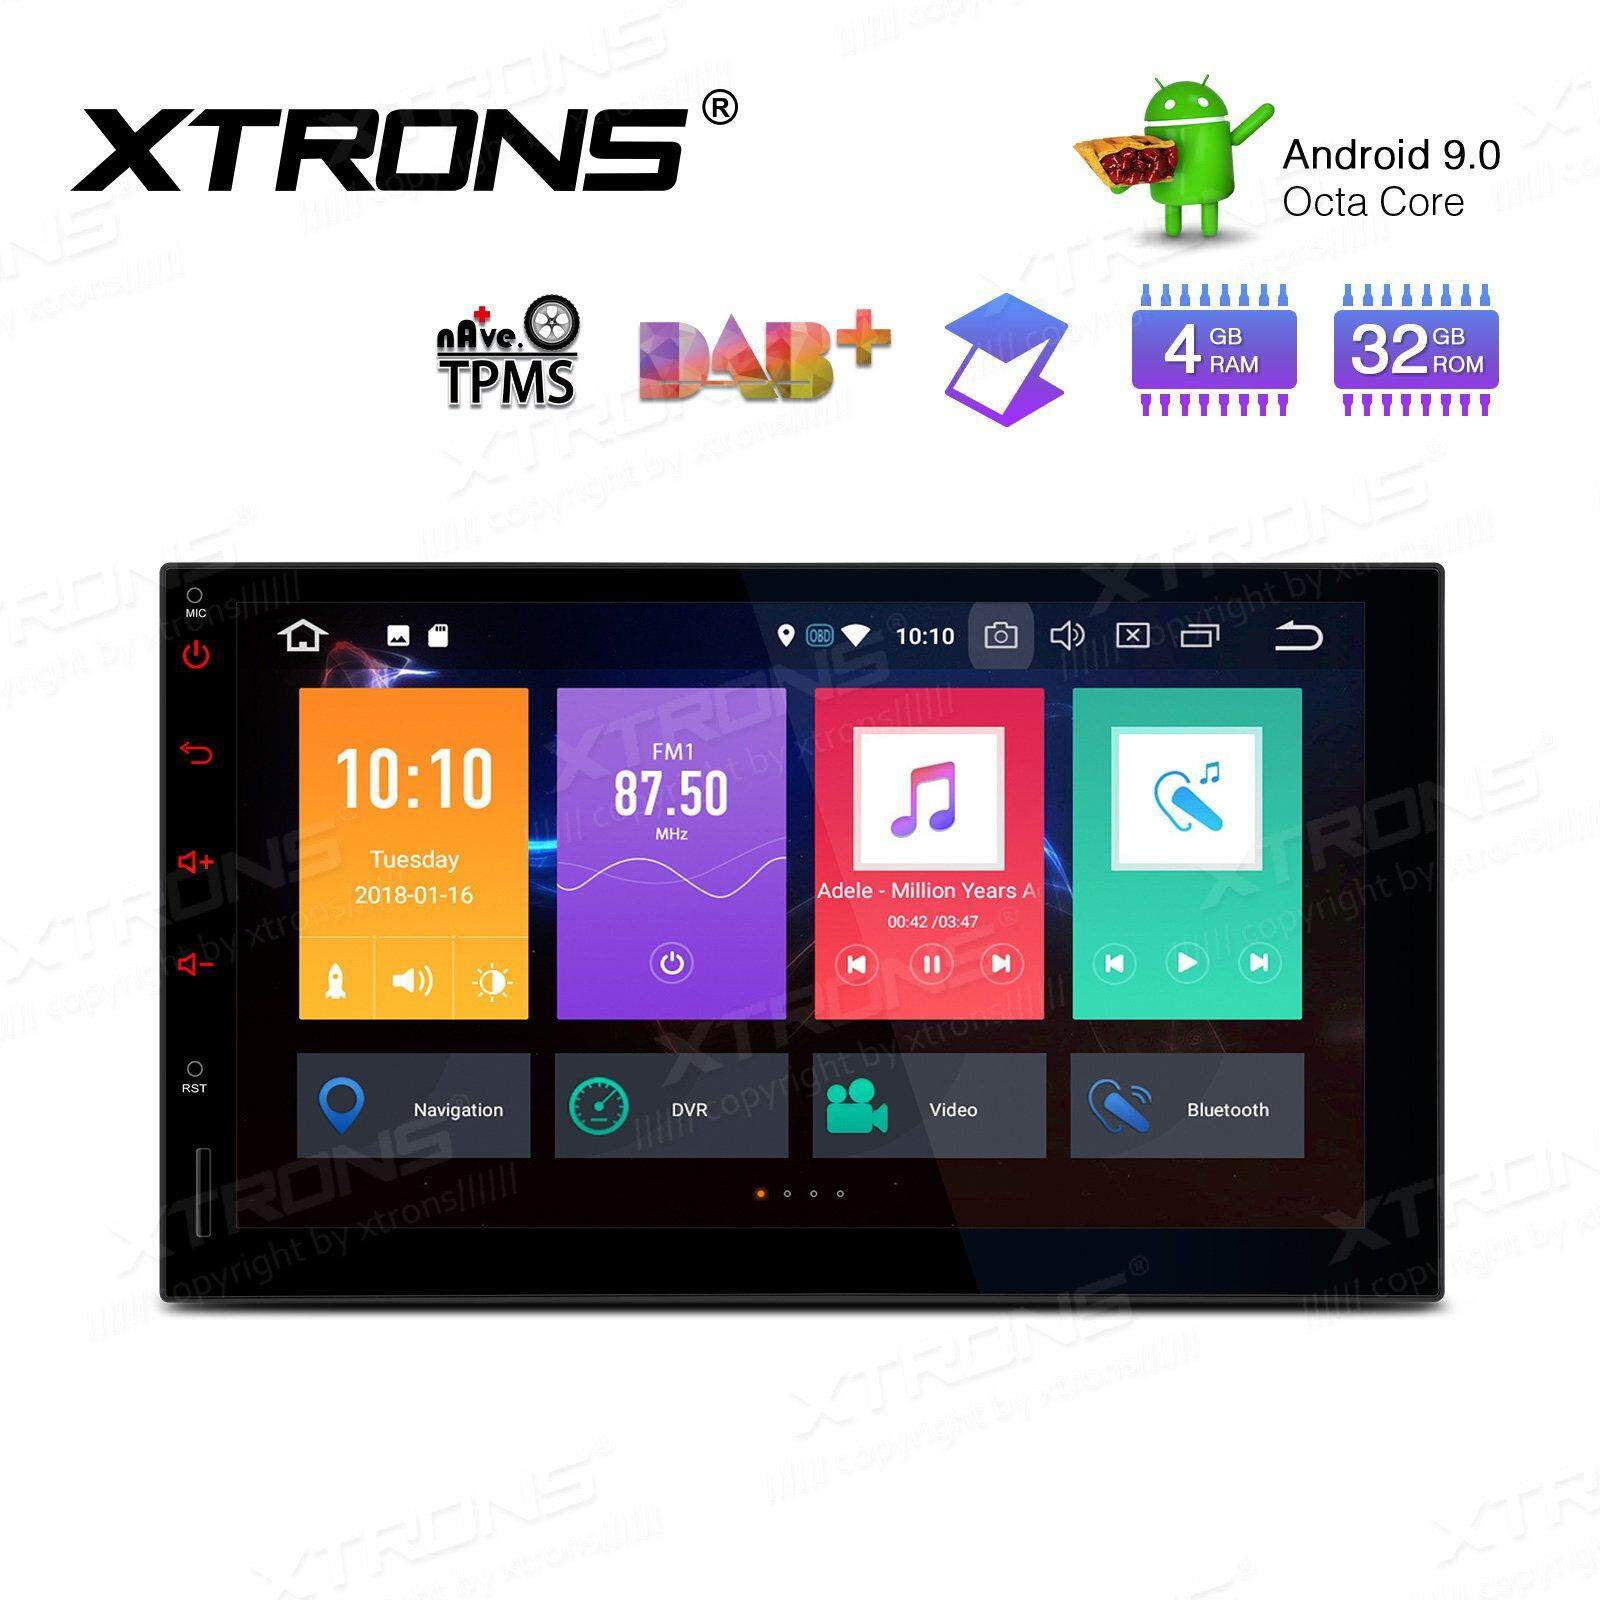 XTRONS Latest Double Din Car Stereo, Android 9.0 Head Unit Bluetooth on audio wiring diagram, hdmi wiring diagram, hitch wiring diagram, smart wheel wiring diagram, radio wiring diagram, dvd wiring diagram, network wiring diagram, accelerometer wiring diagram, power wiring diagram, battery wiring diagram, dimensions wiring diagram, alarm wiring diagram, gps wiring diagram, electric step wiring diagram, cruise control wiring diagram, speakers wiring diagram, usb wiring diagram, cd player wiring diagram, ram wiring diagram, abs wiring diagram,